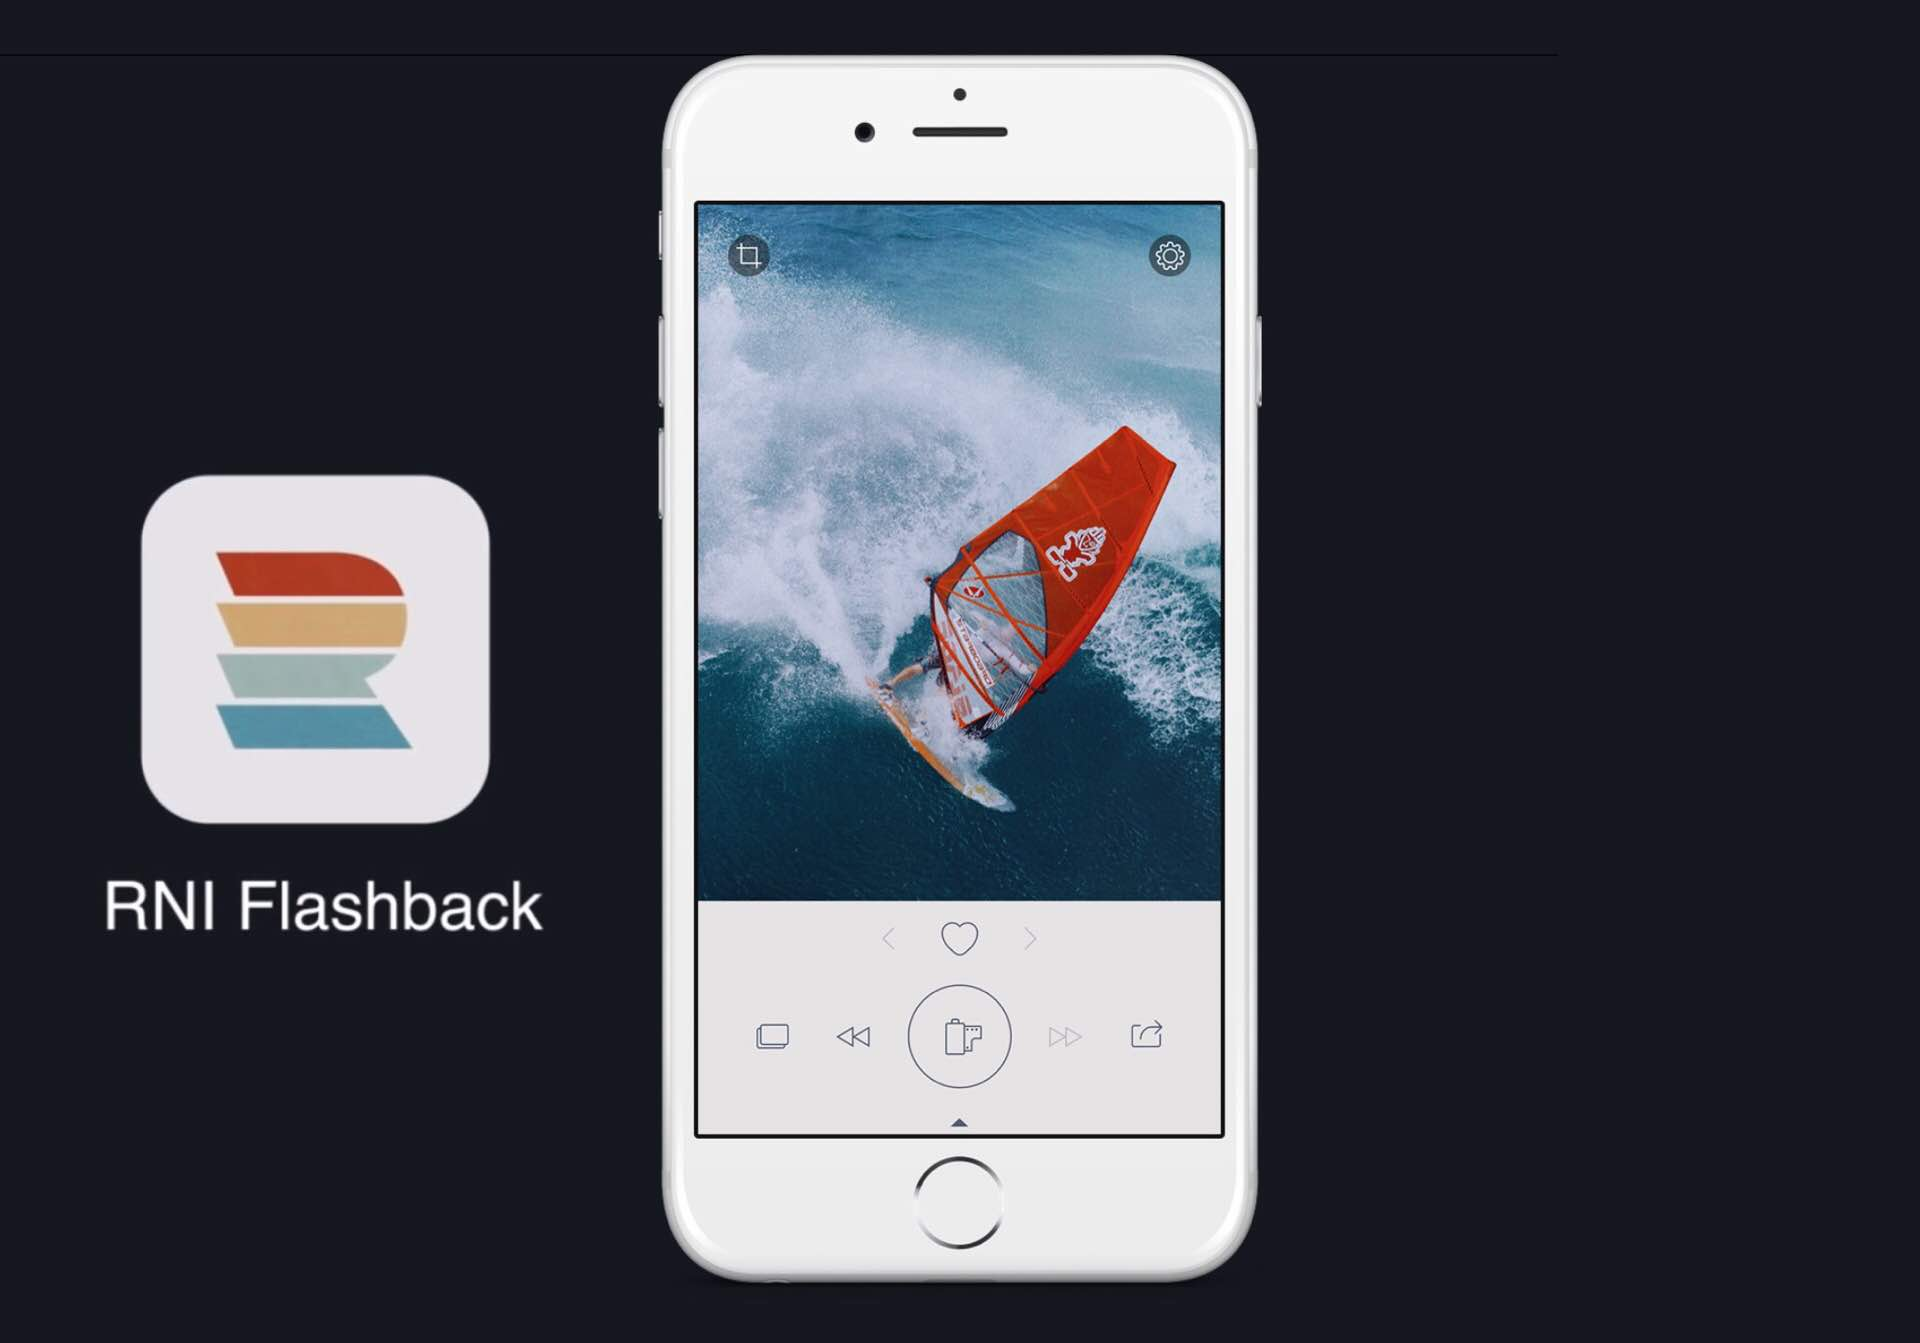 rni-flashback-for-ios